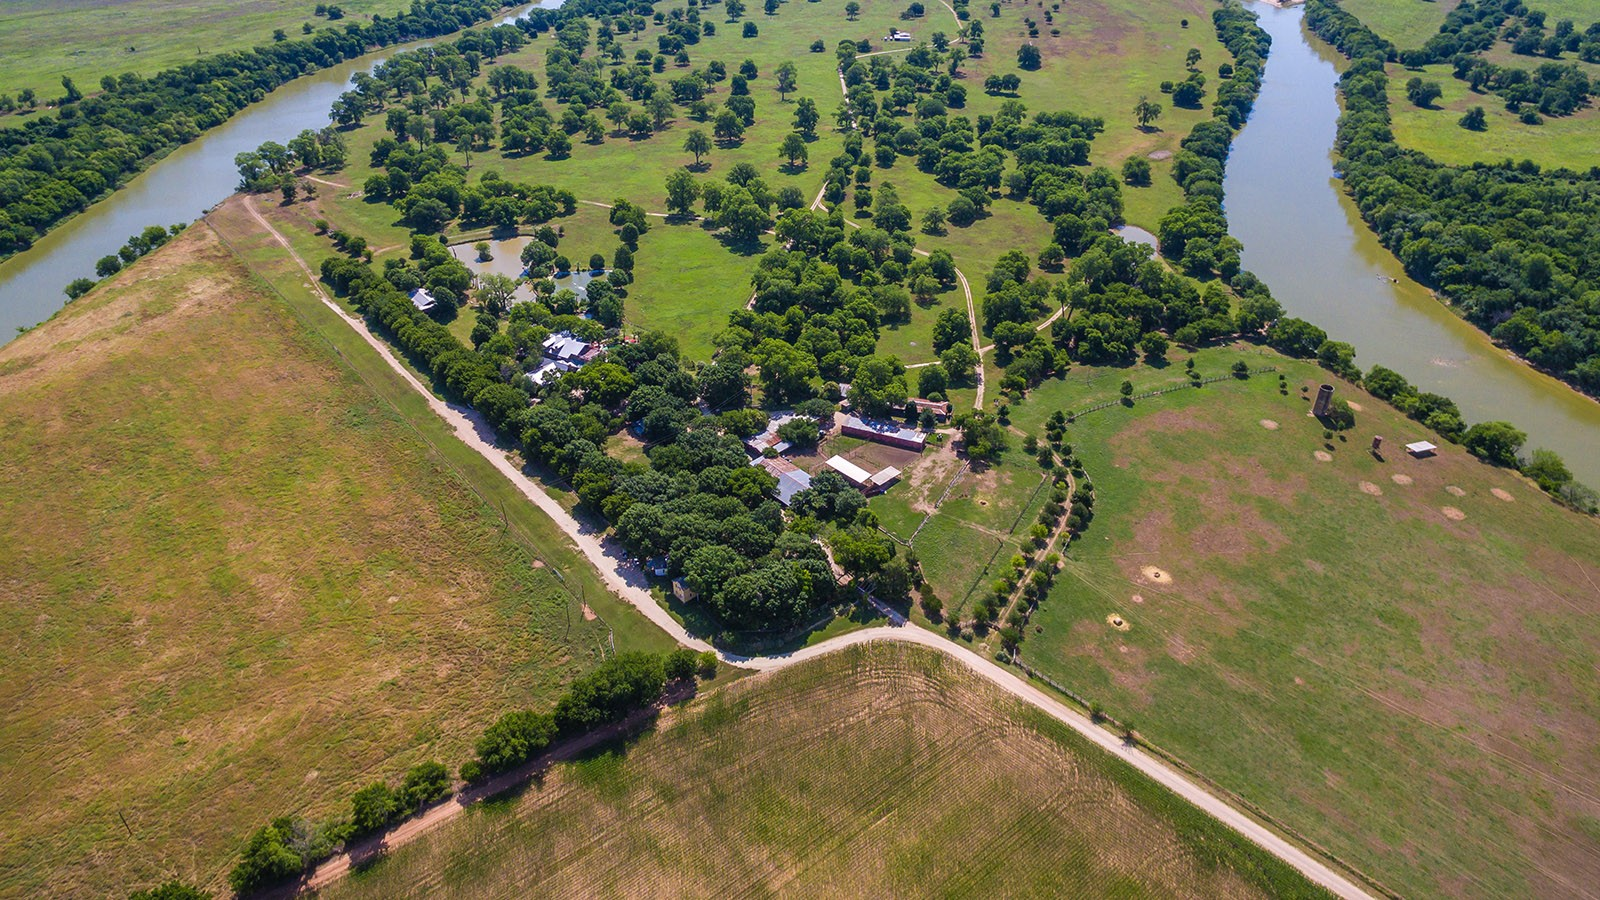 aerial view of main ranch area with grassy pasture and river